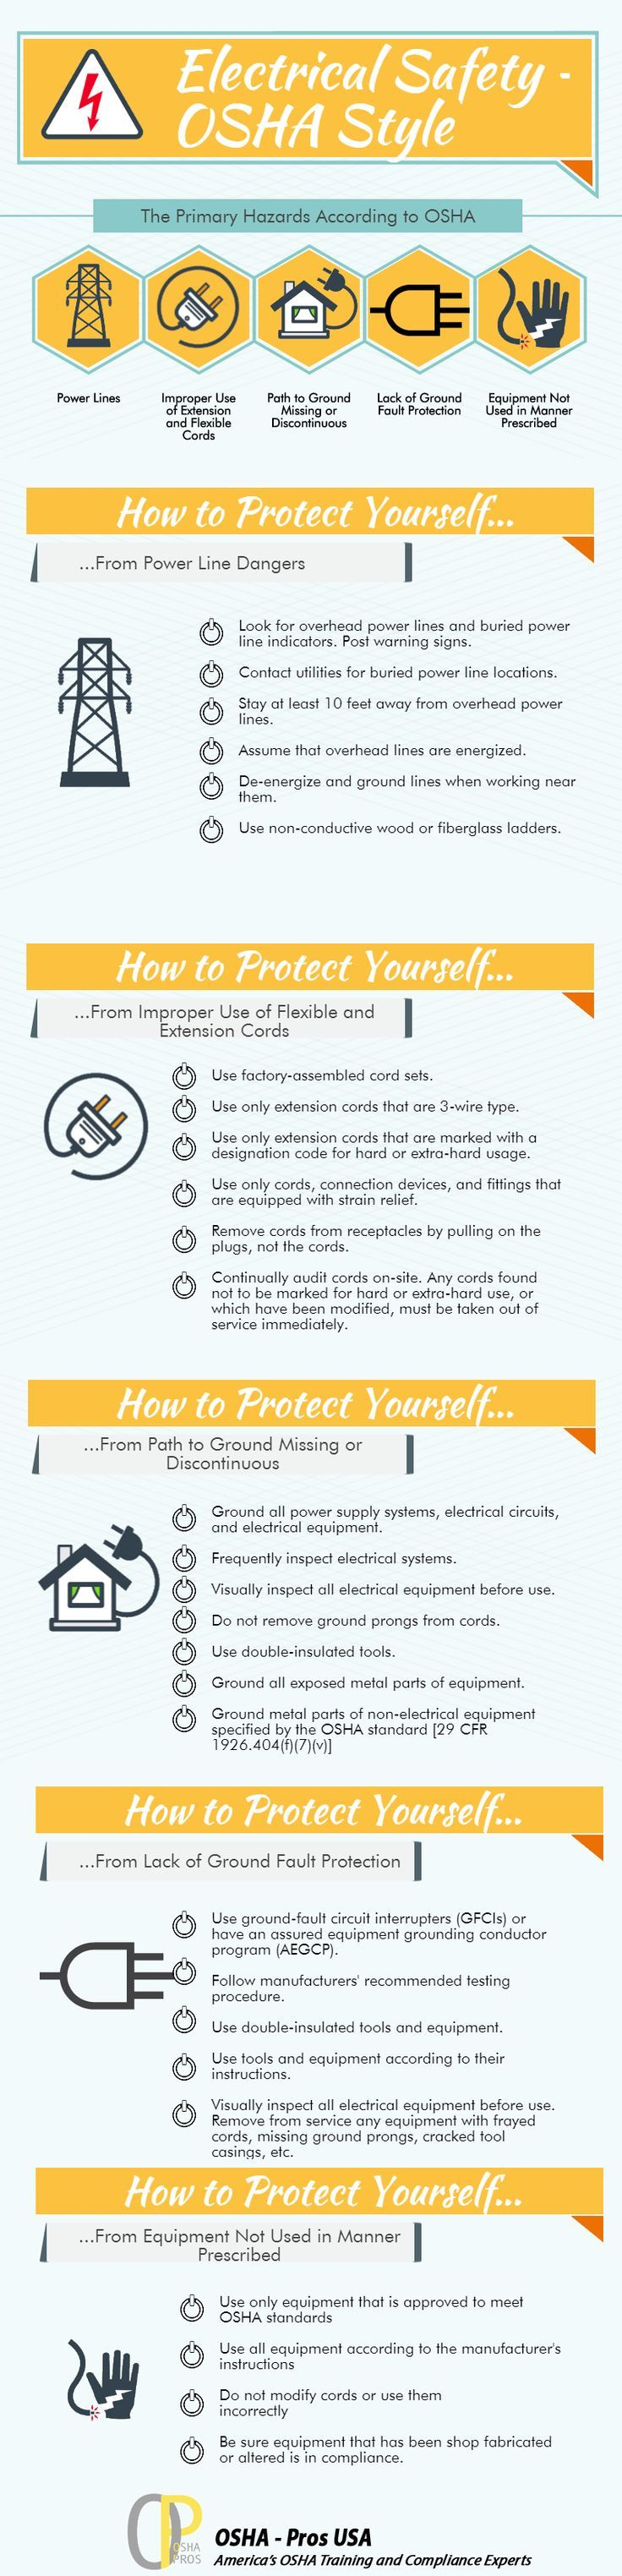 Osha Electrical Safety Training Standards In An Infographic